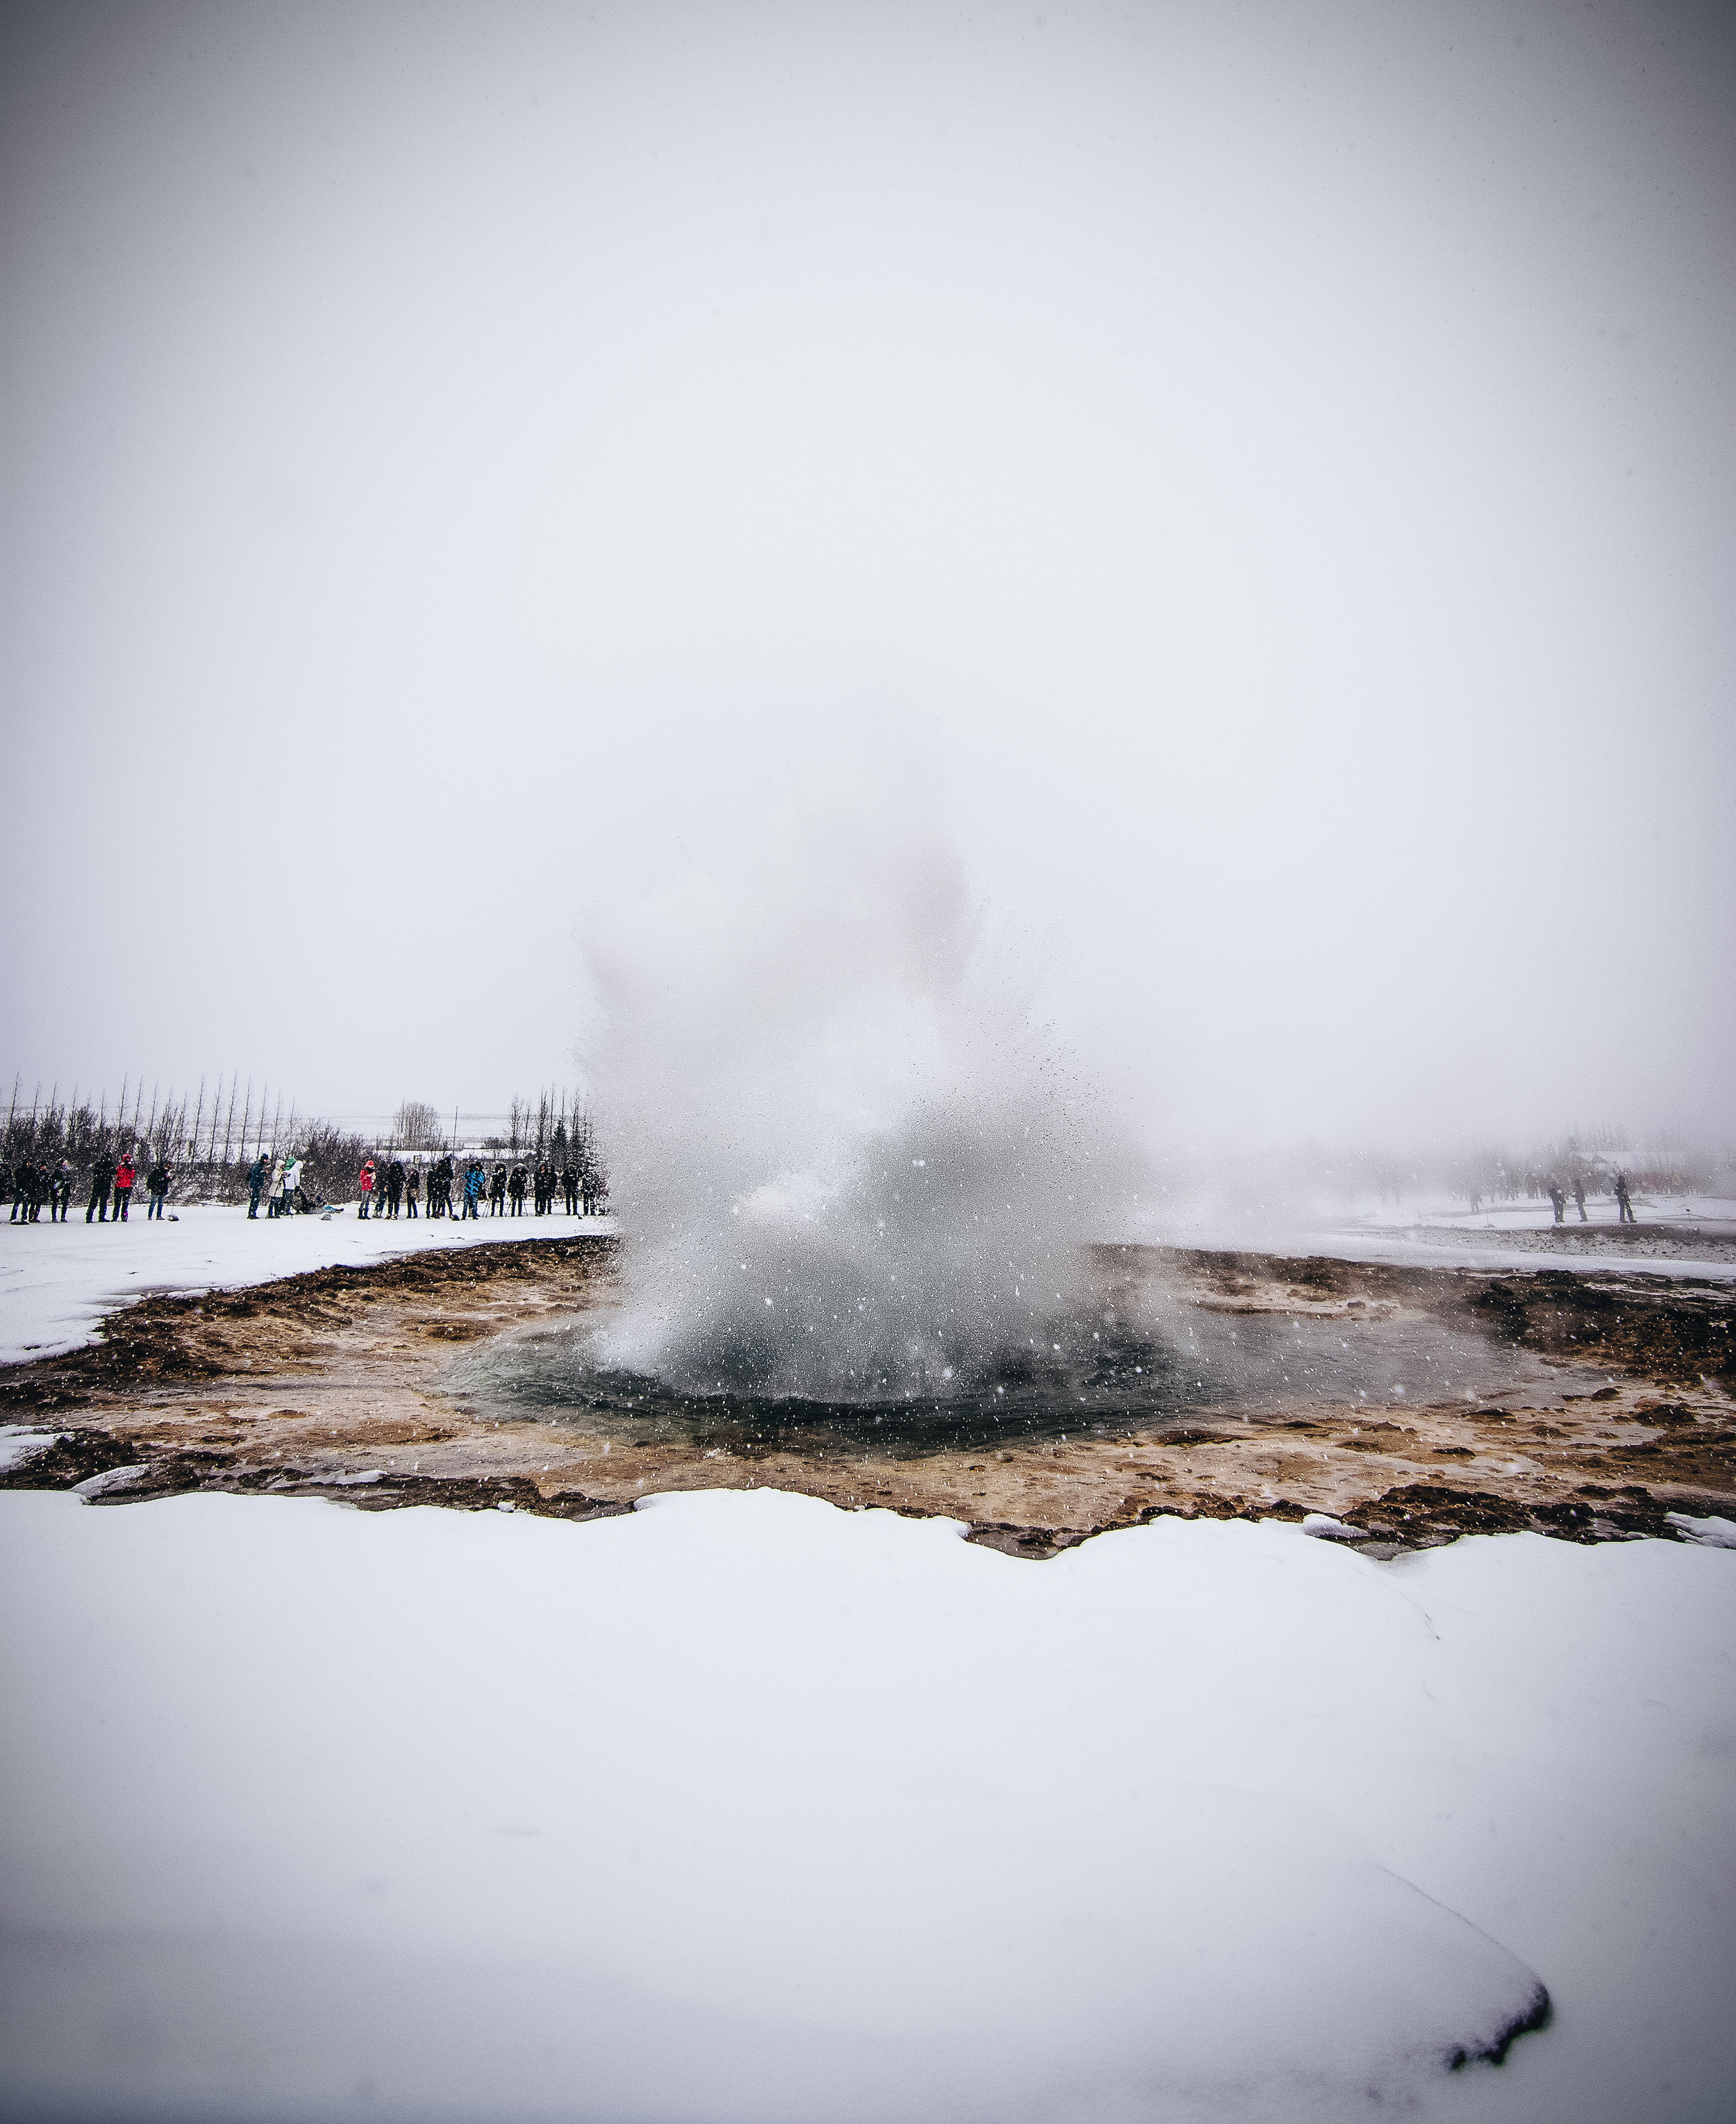 Yes. Nothing like getting soaked by a geyser in -30 degree temperatures.